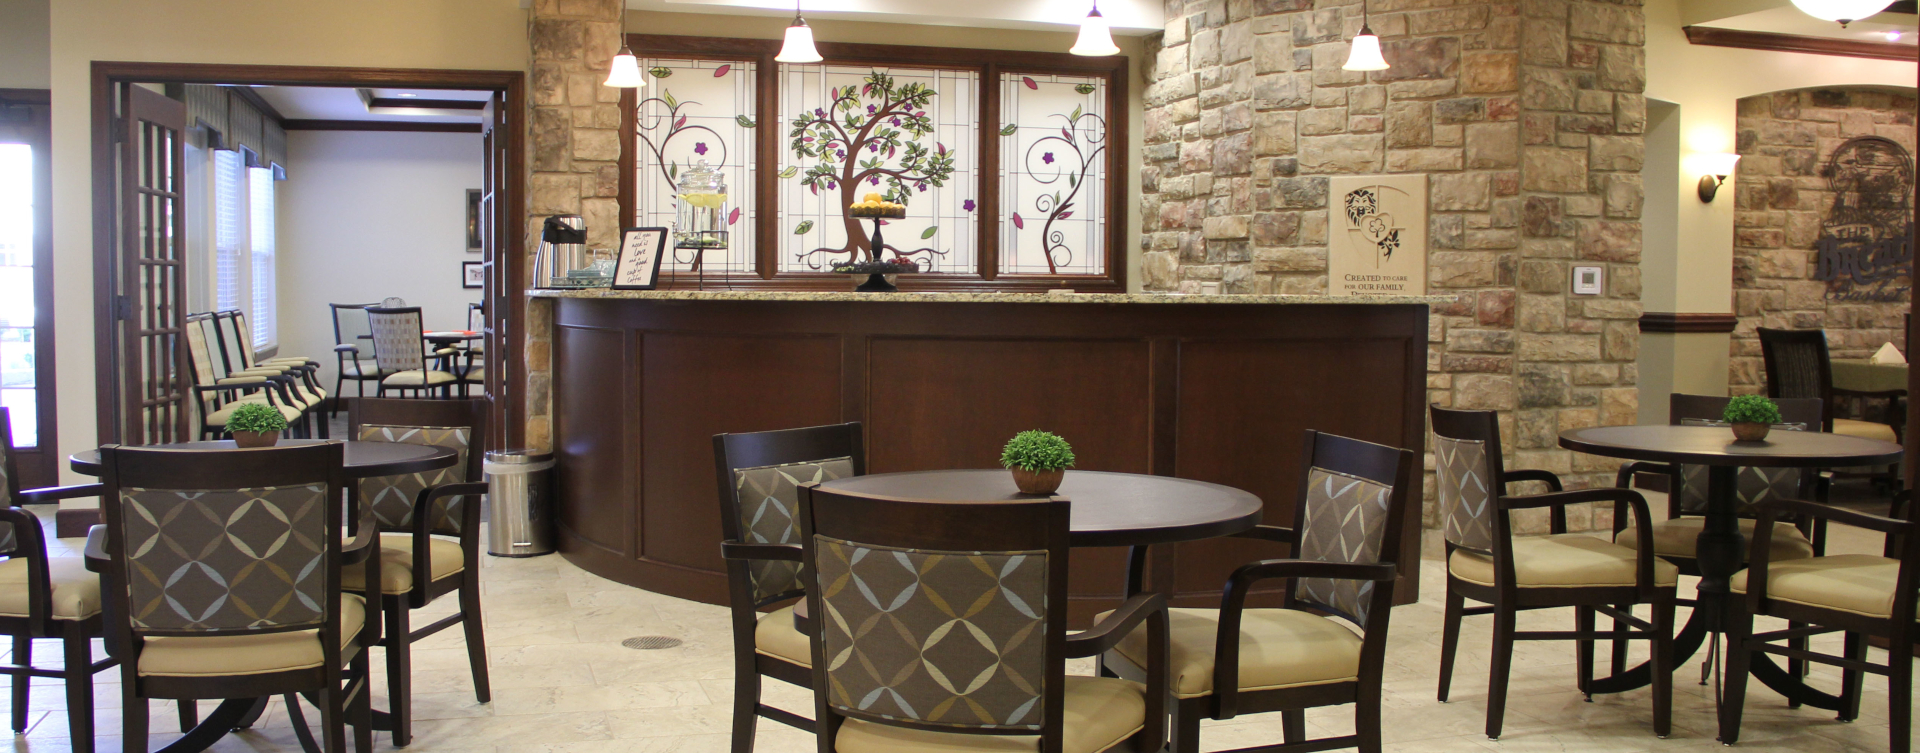 Intimate enough to entertain your closest family; you can even host your next get together in the bistro at Bickford of Tinley Park